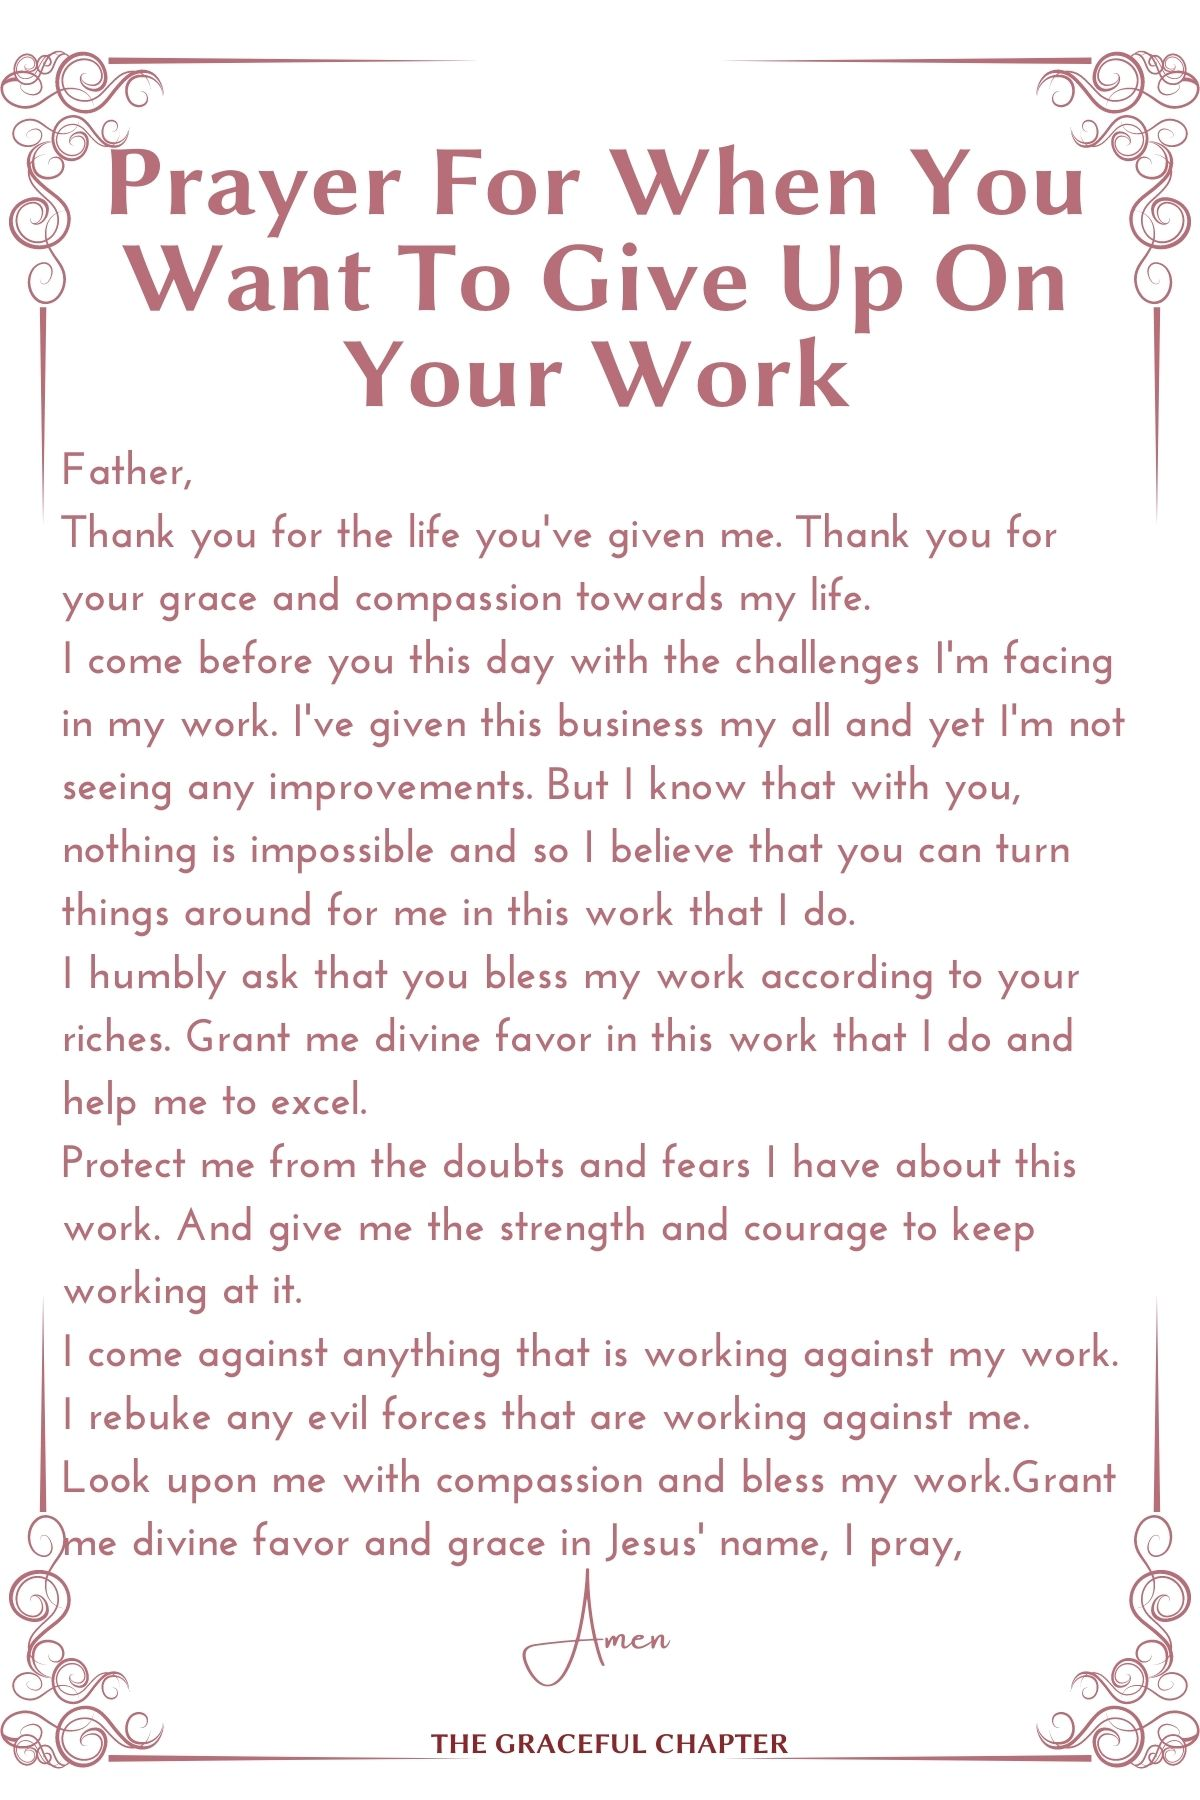 Prayer for when you want to give up on your work